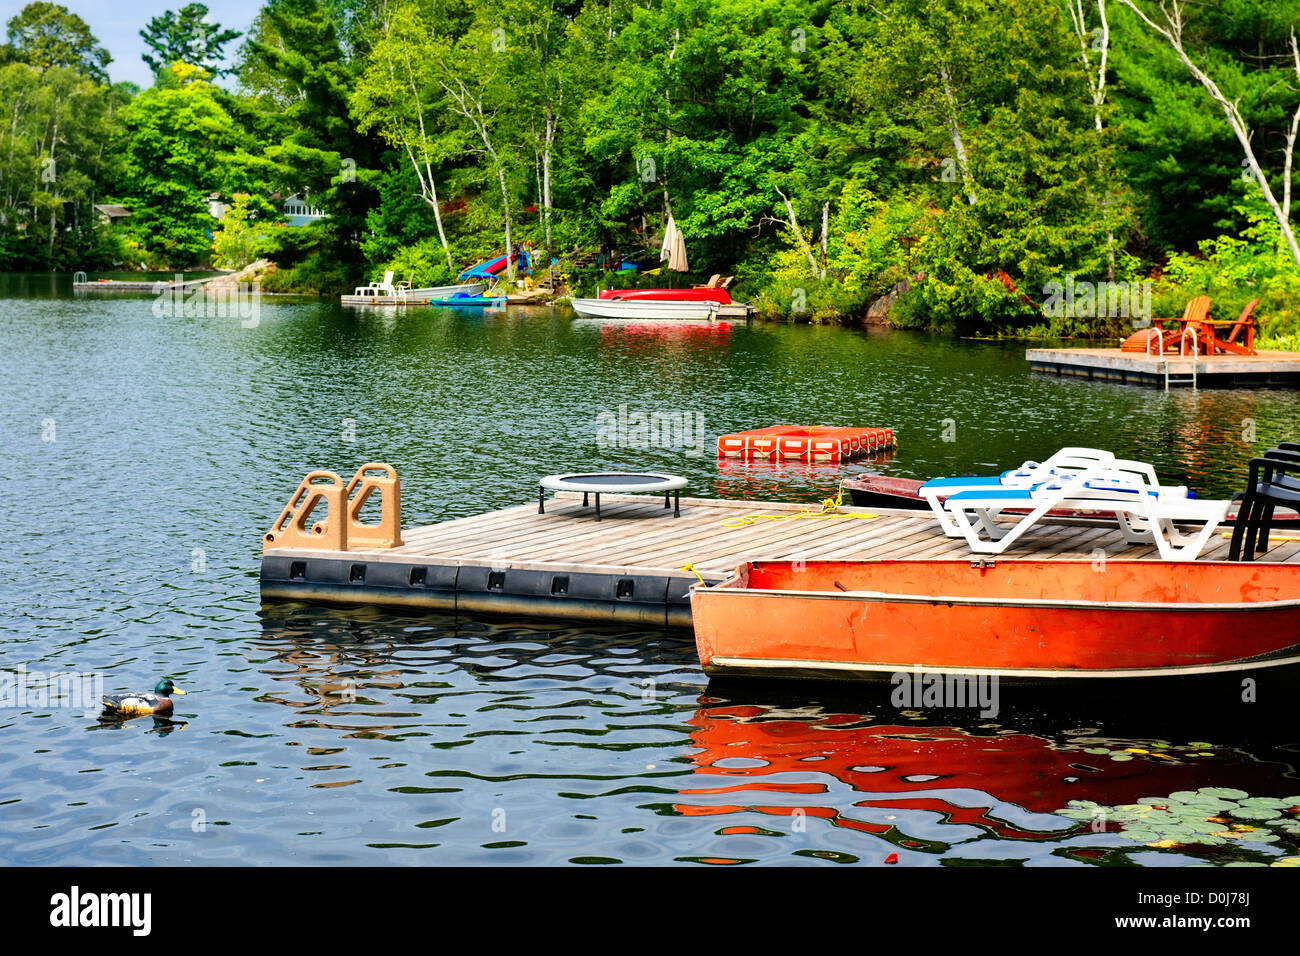 Beautiful lake with docks and diving platform in Ontario Canada cottage country - Stock Image